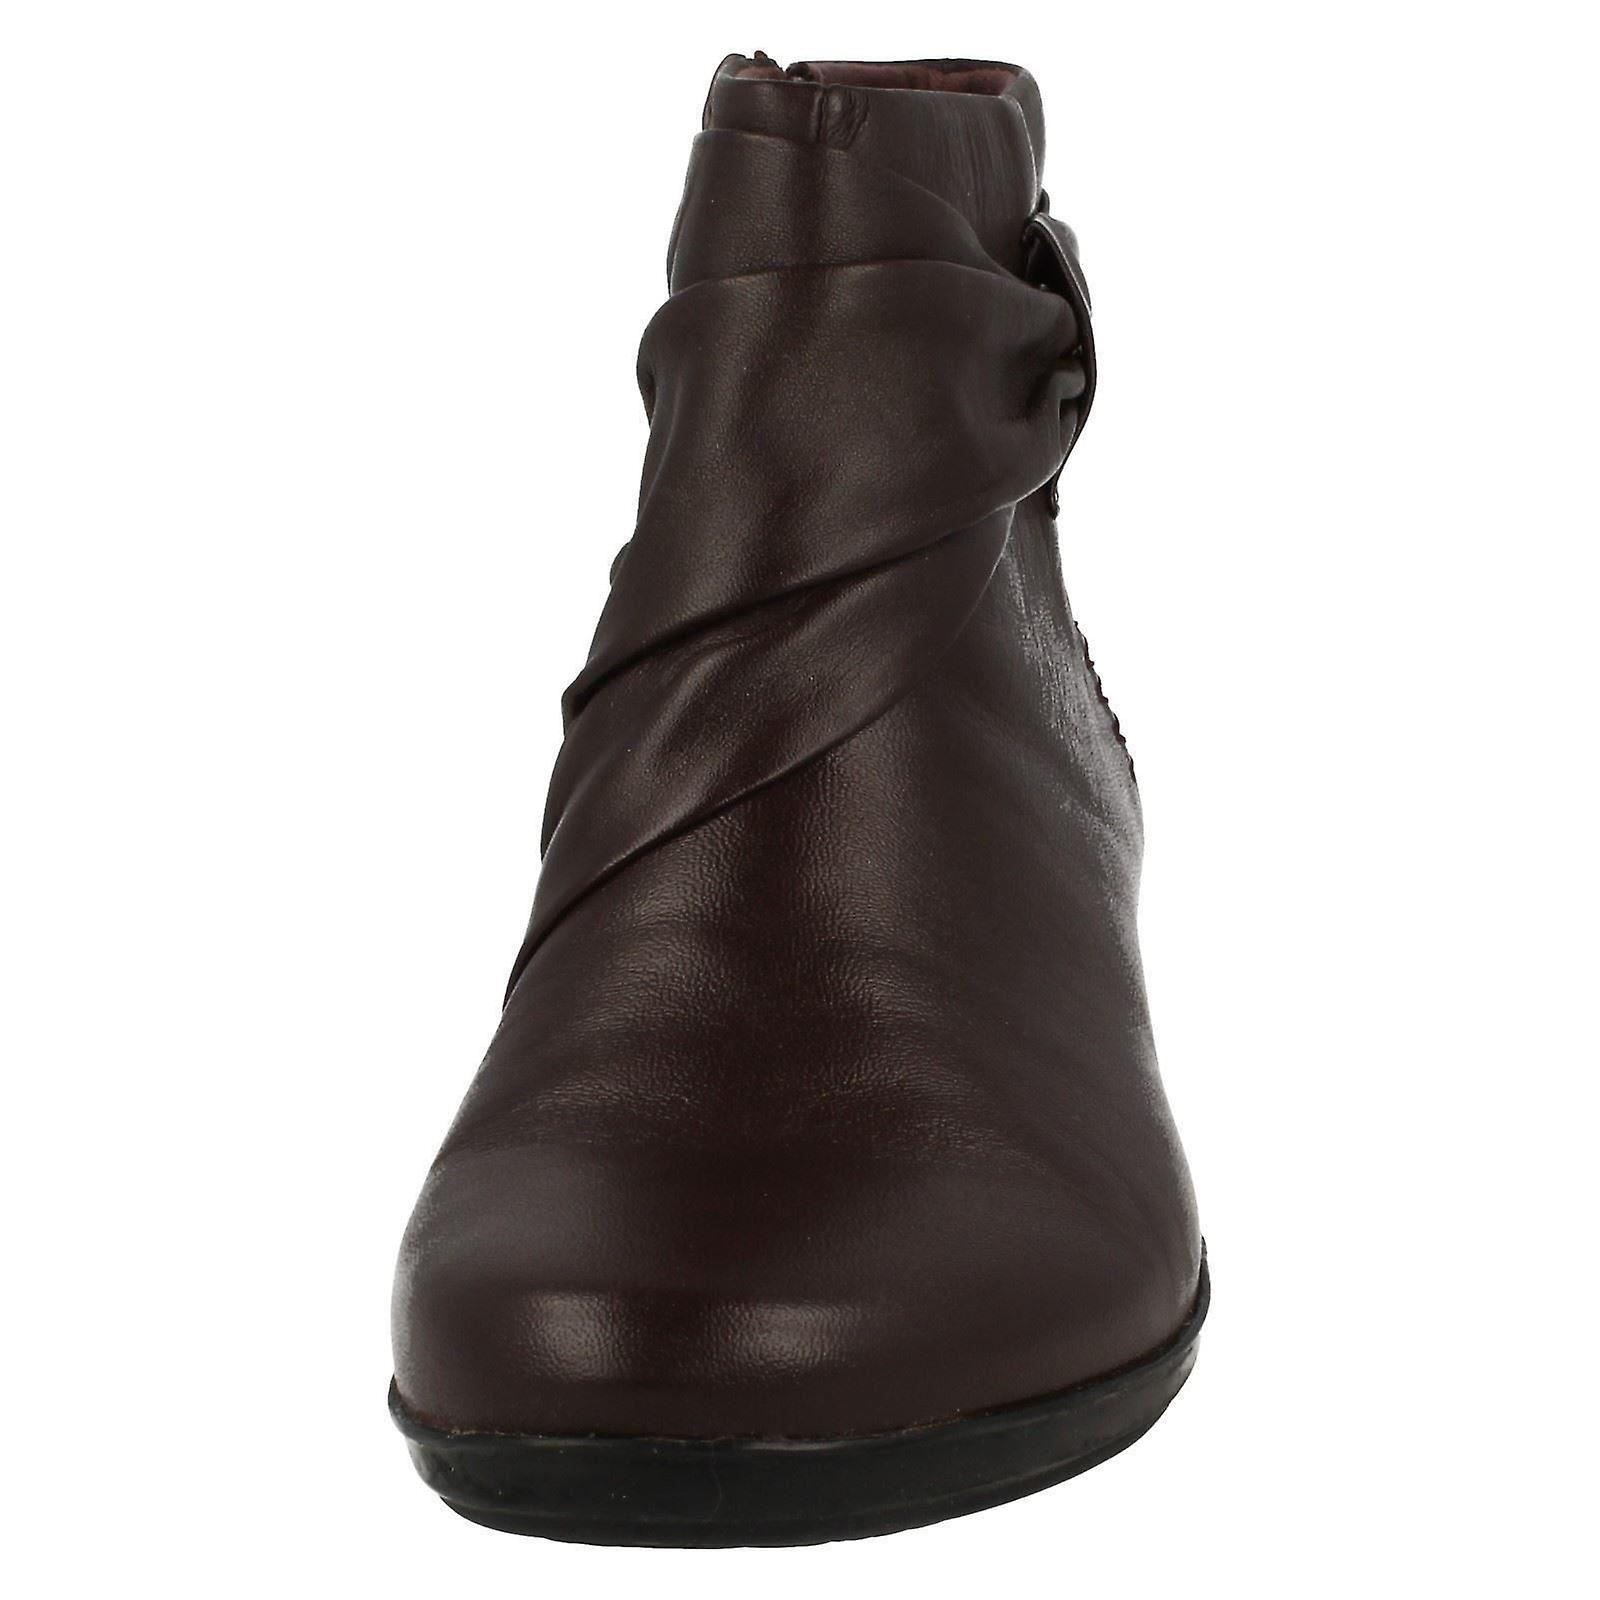 arriving check out available Ladies Clarks Ankle Boots Everlay Mandy